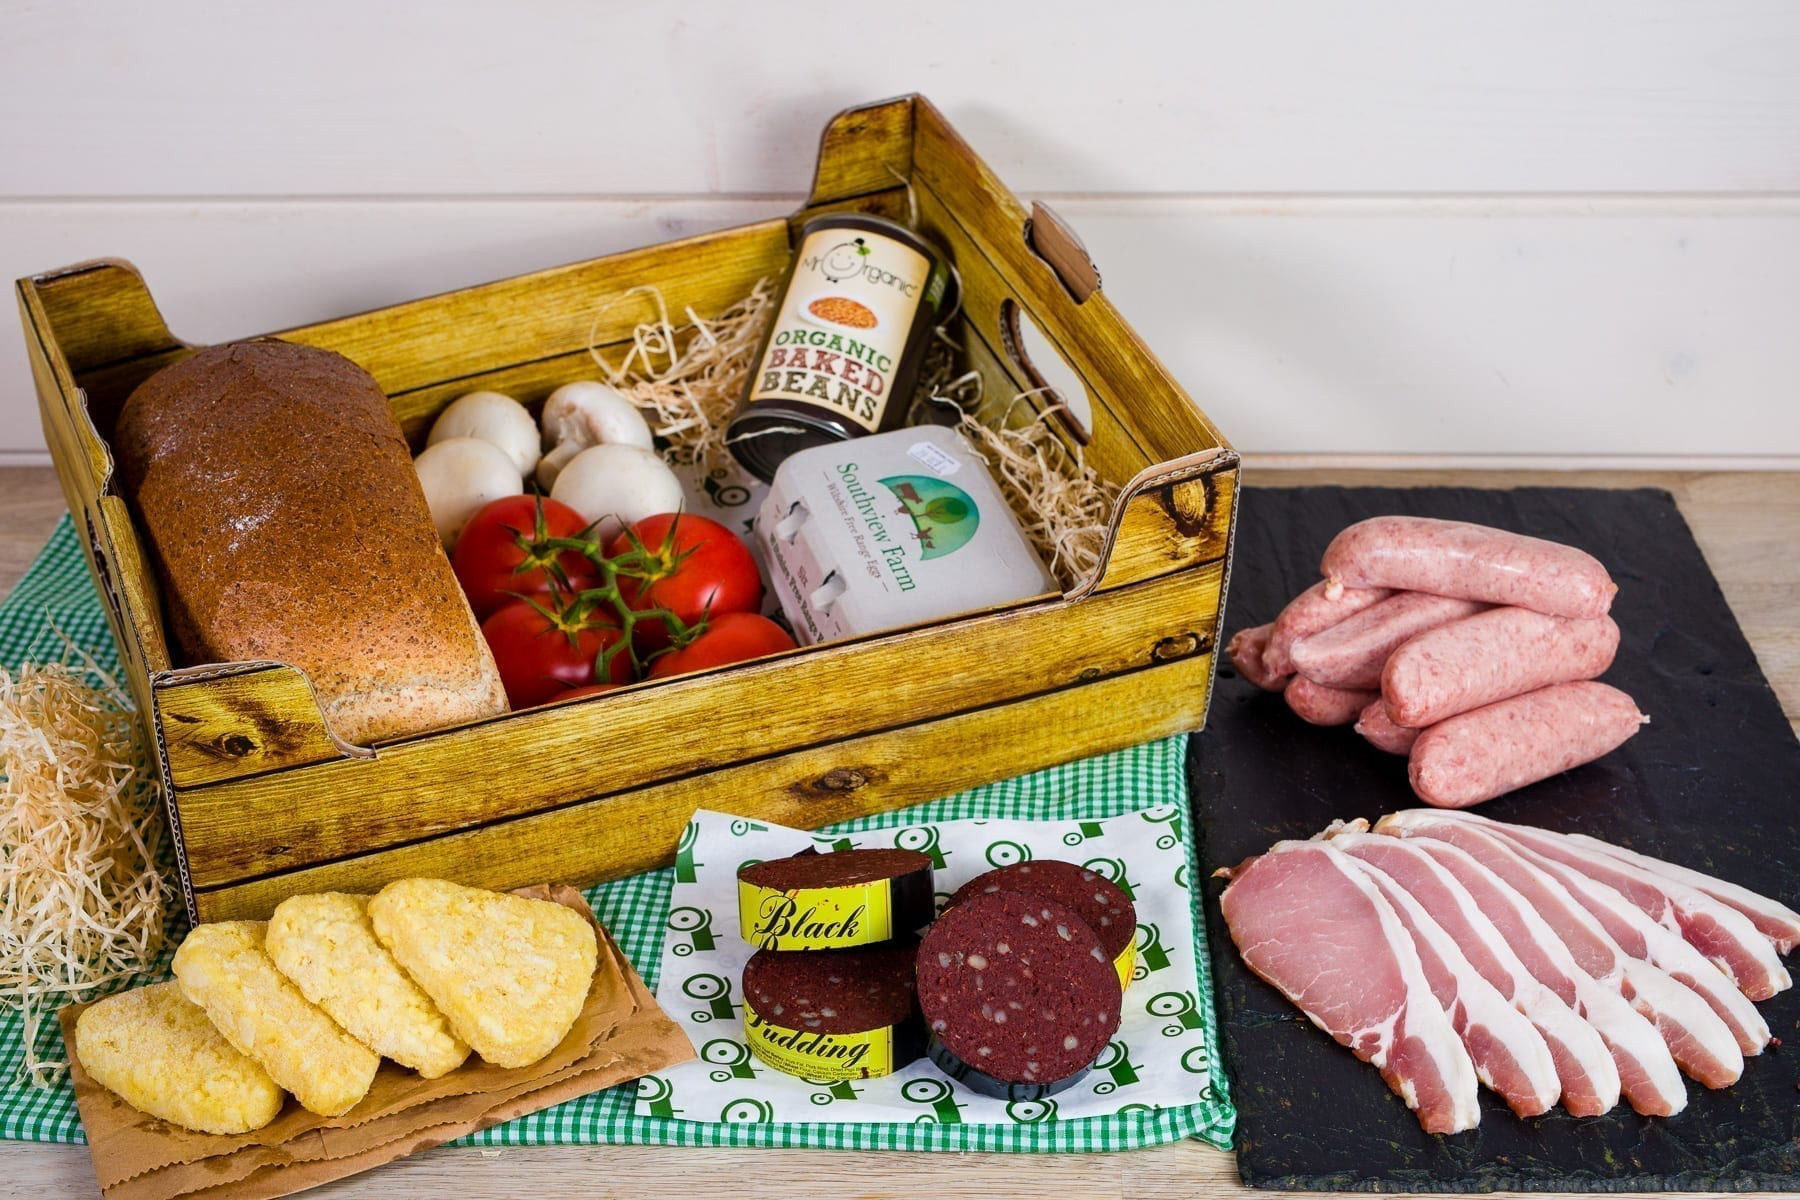 Farmhouse breakfast self-catering box